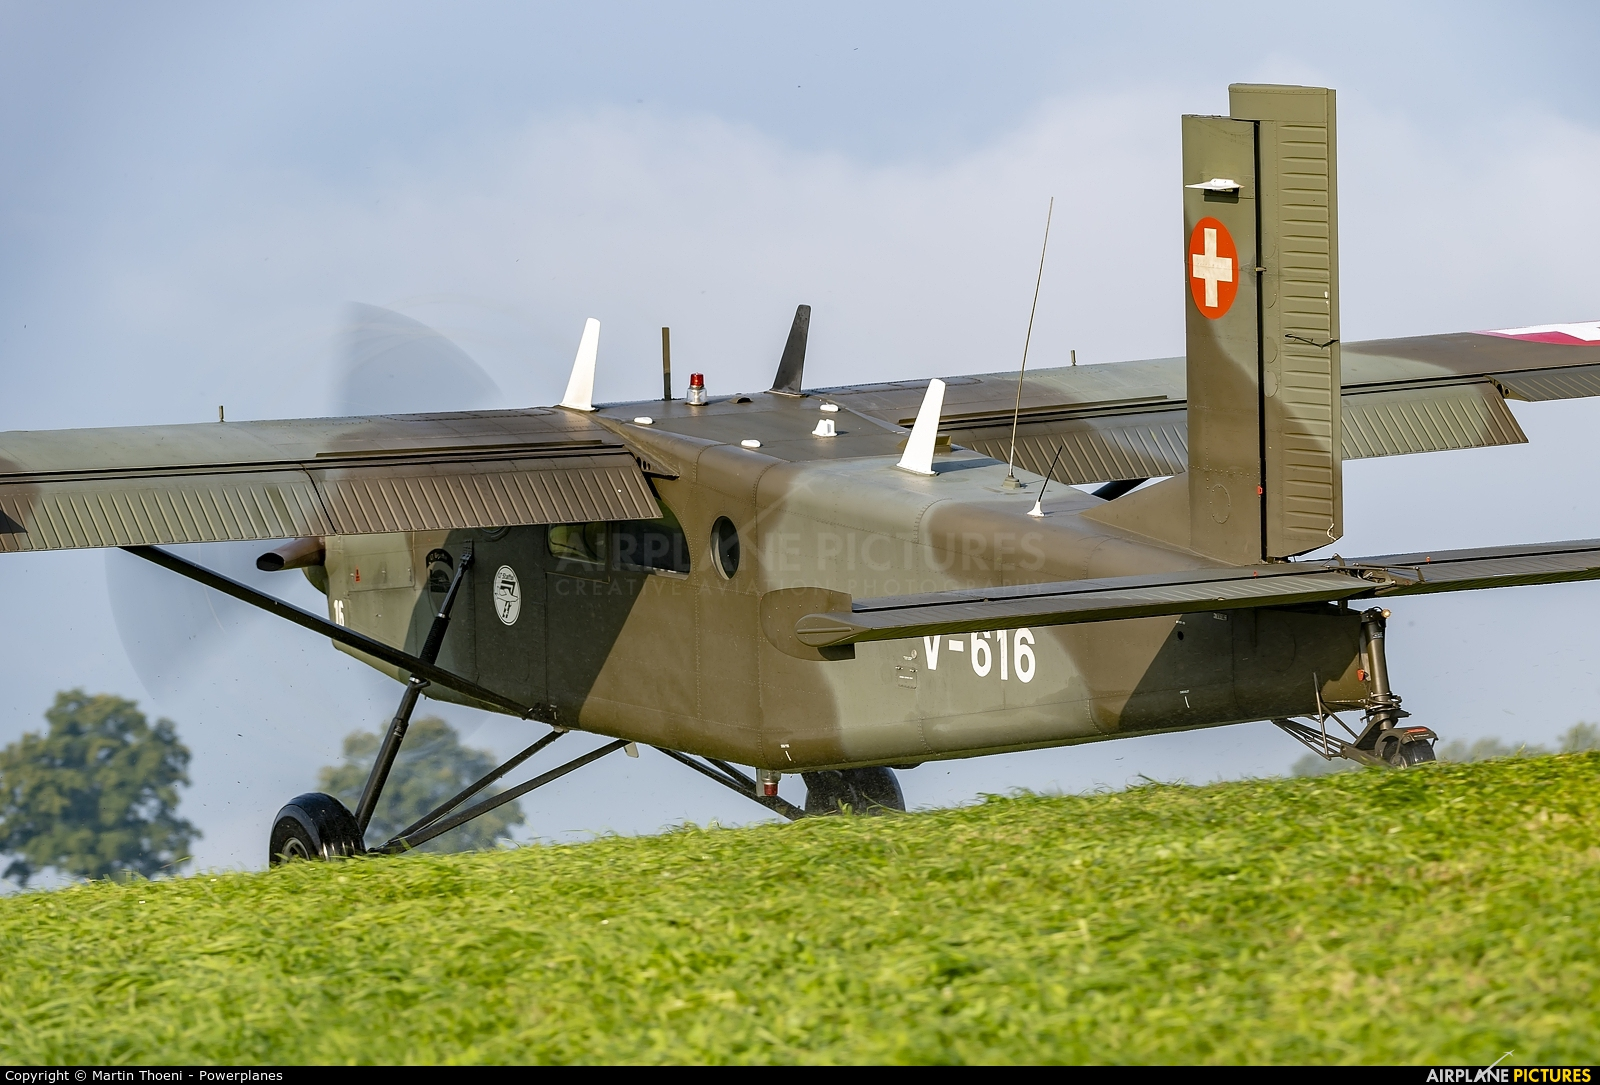 Switzerland - Air Force V-616 aircraft at Off Airport - Switzerland